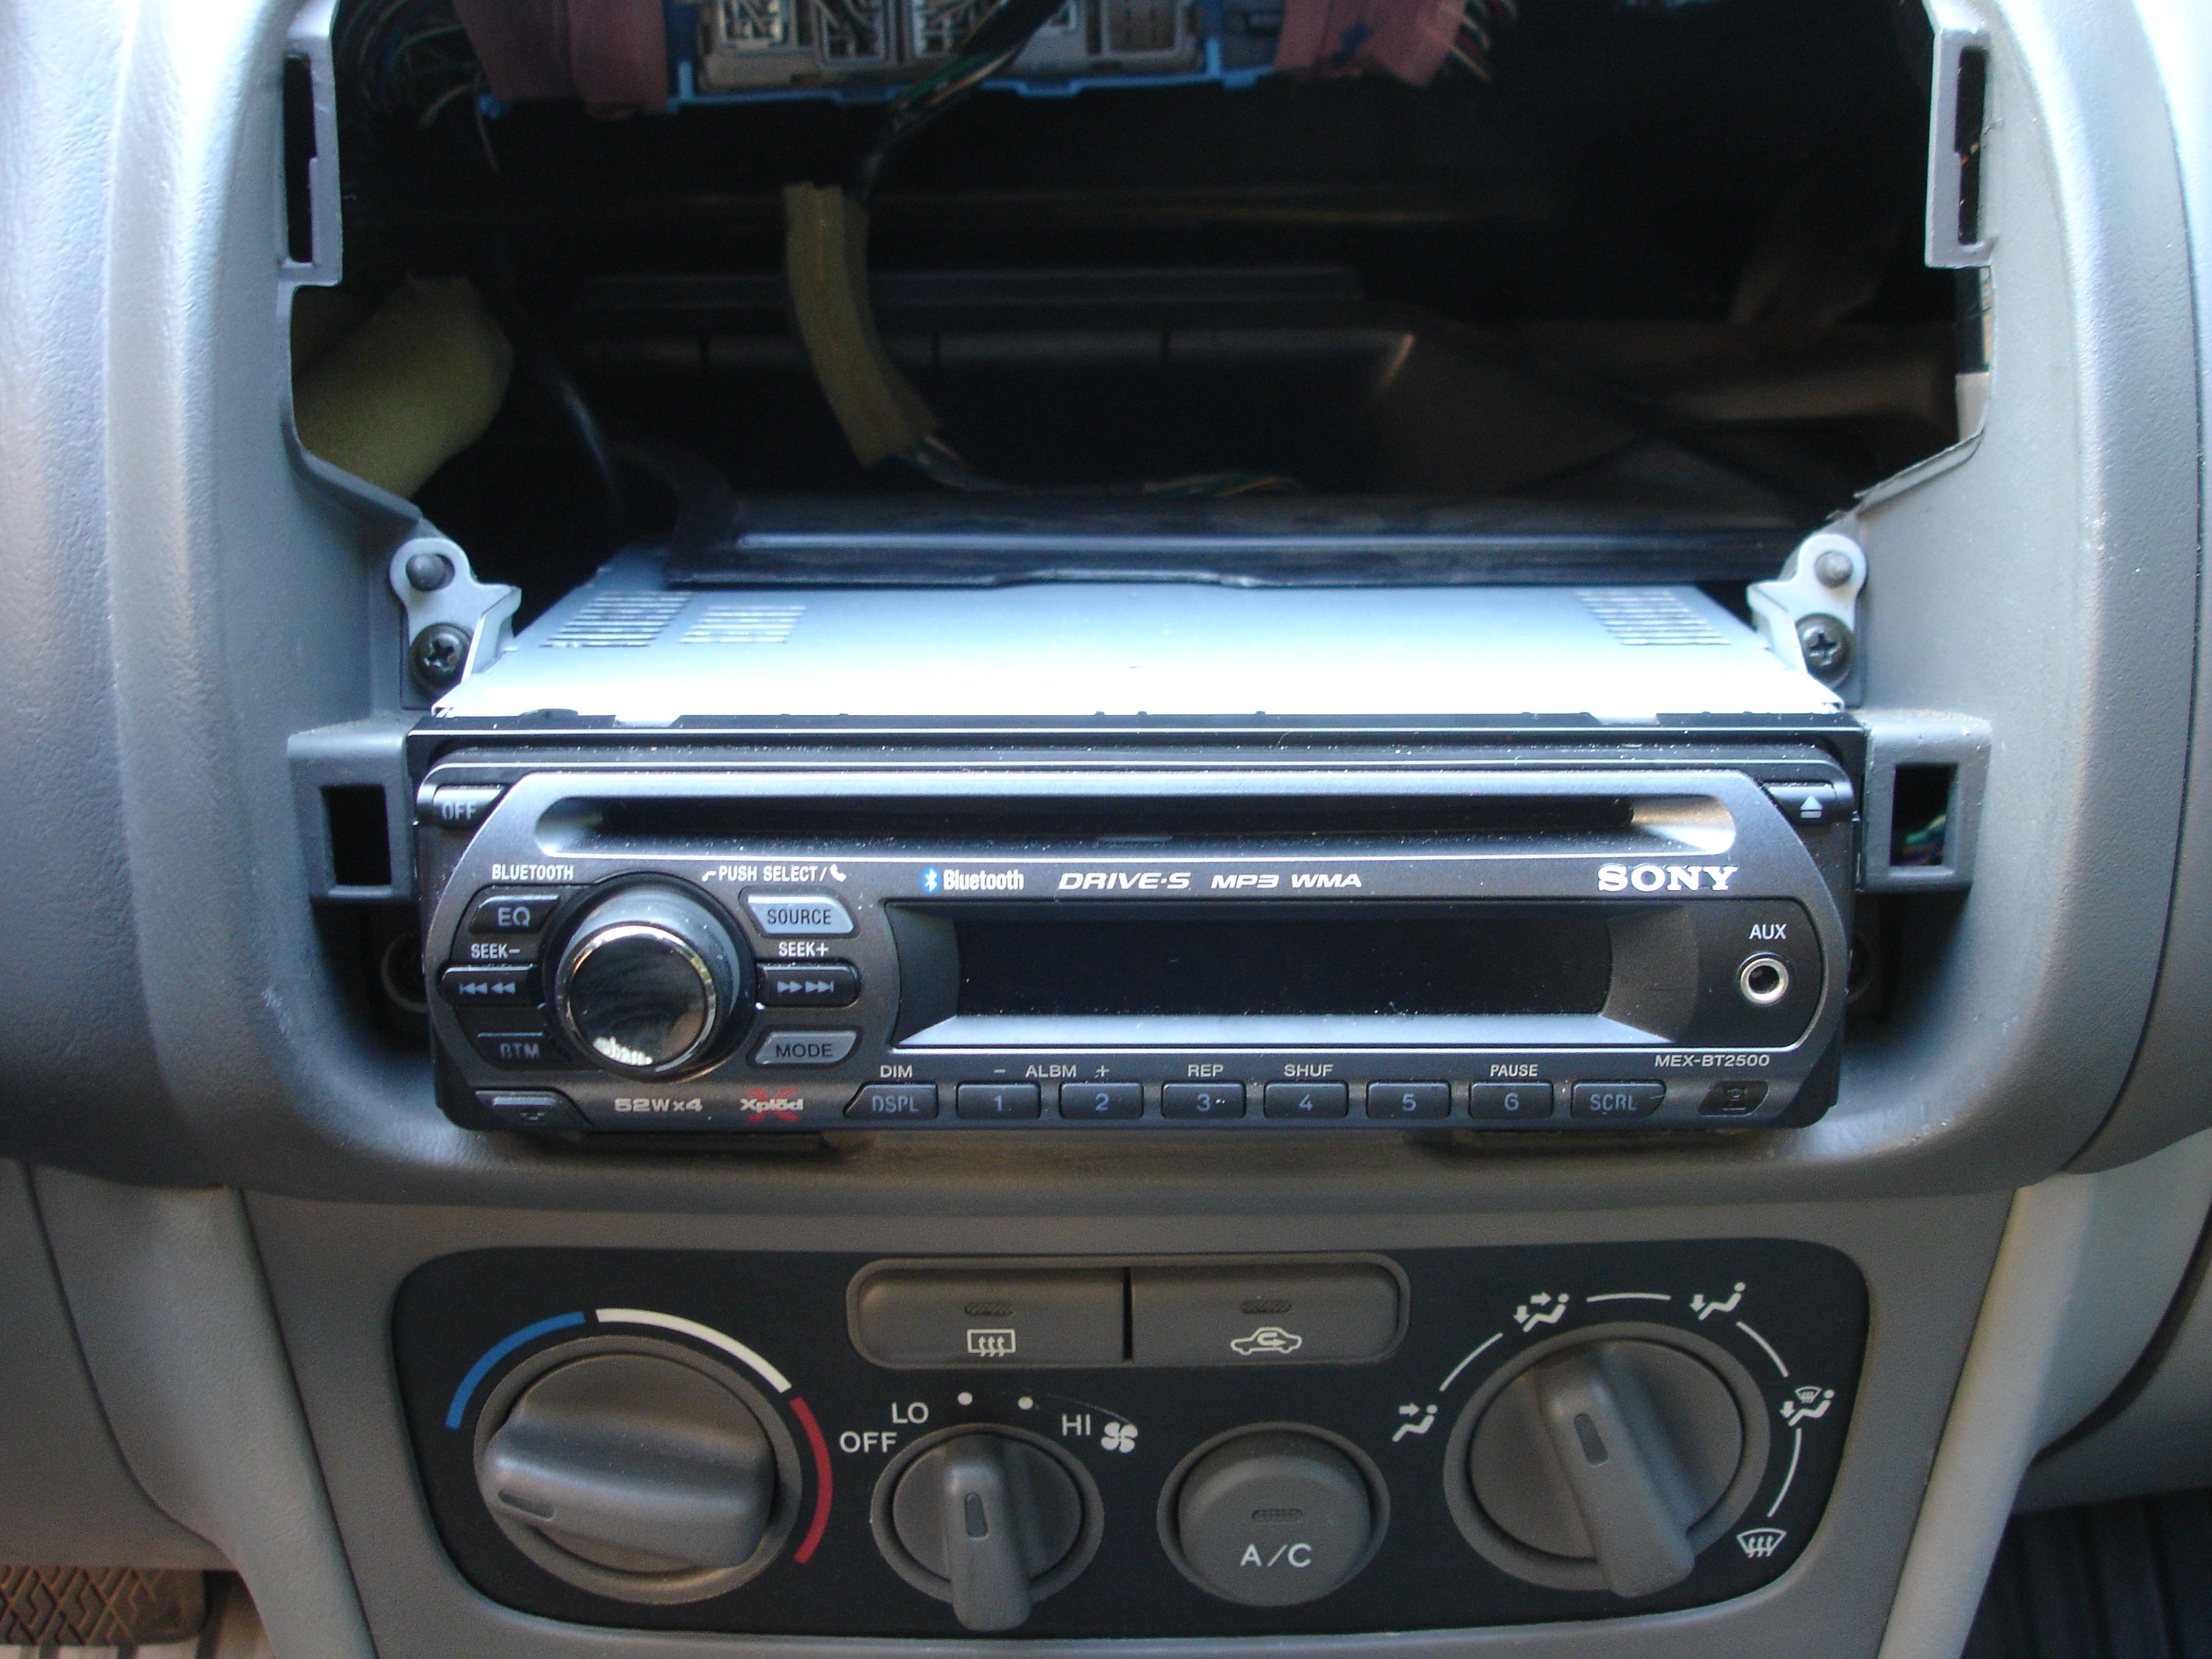 About Car Radio Wiring Information For 1998 Chevrolet Astro Car Radio